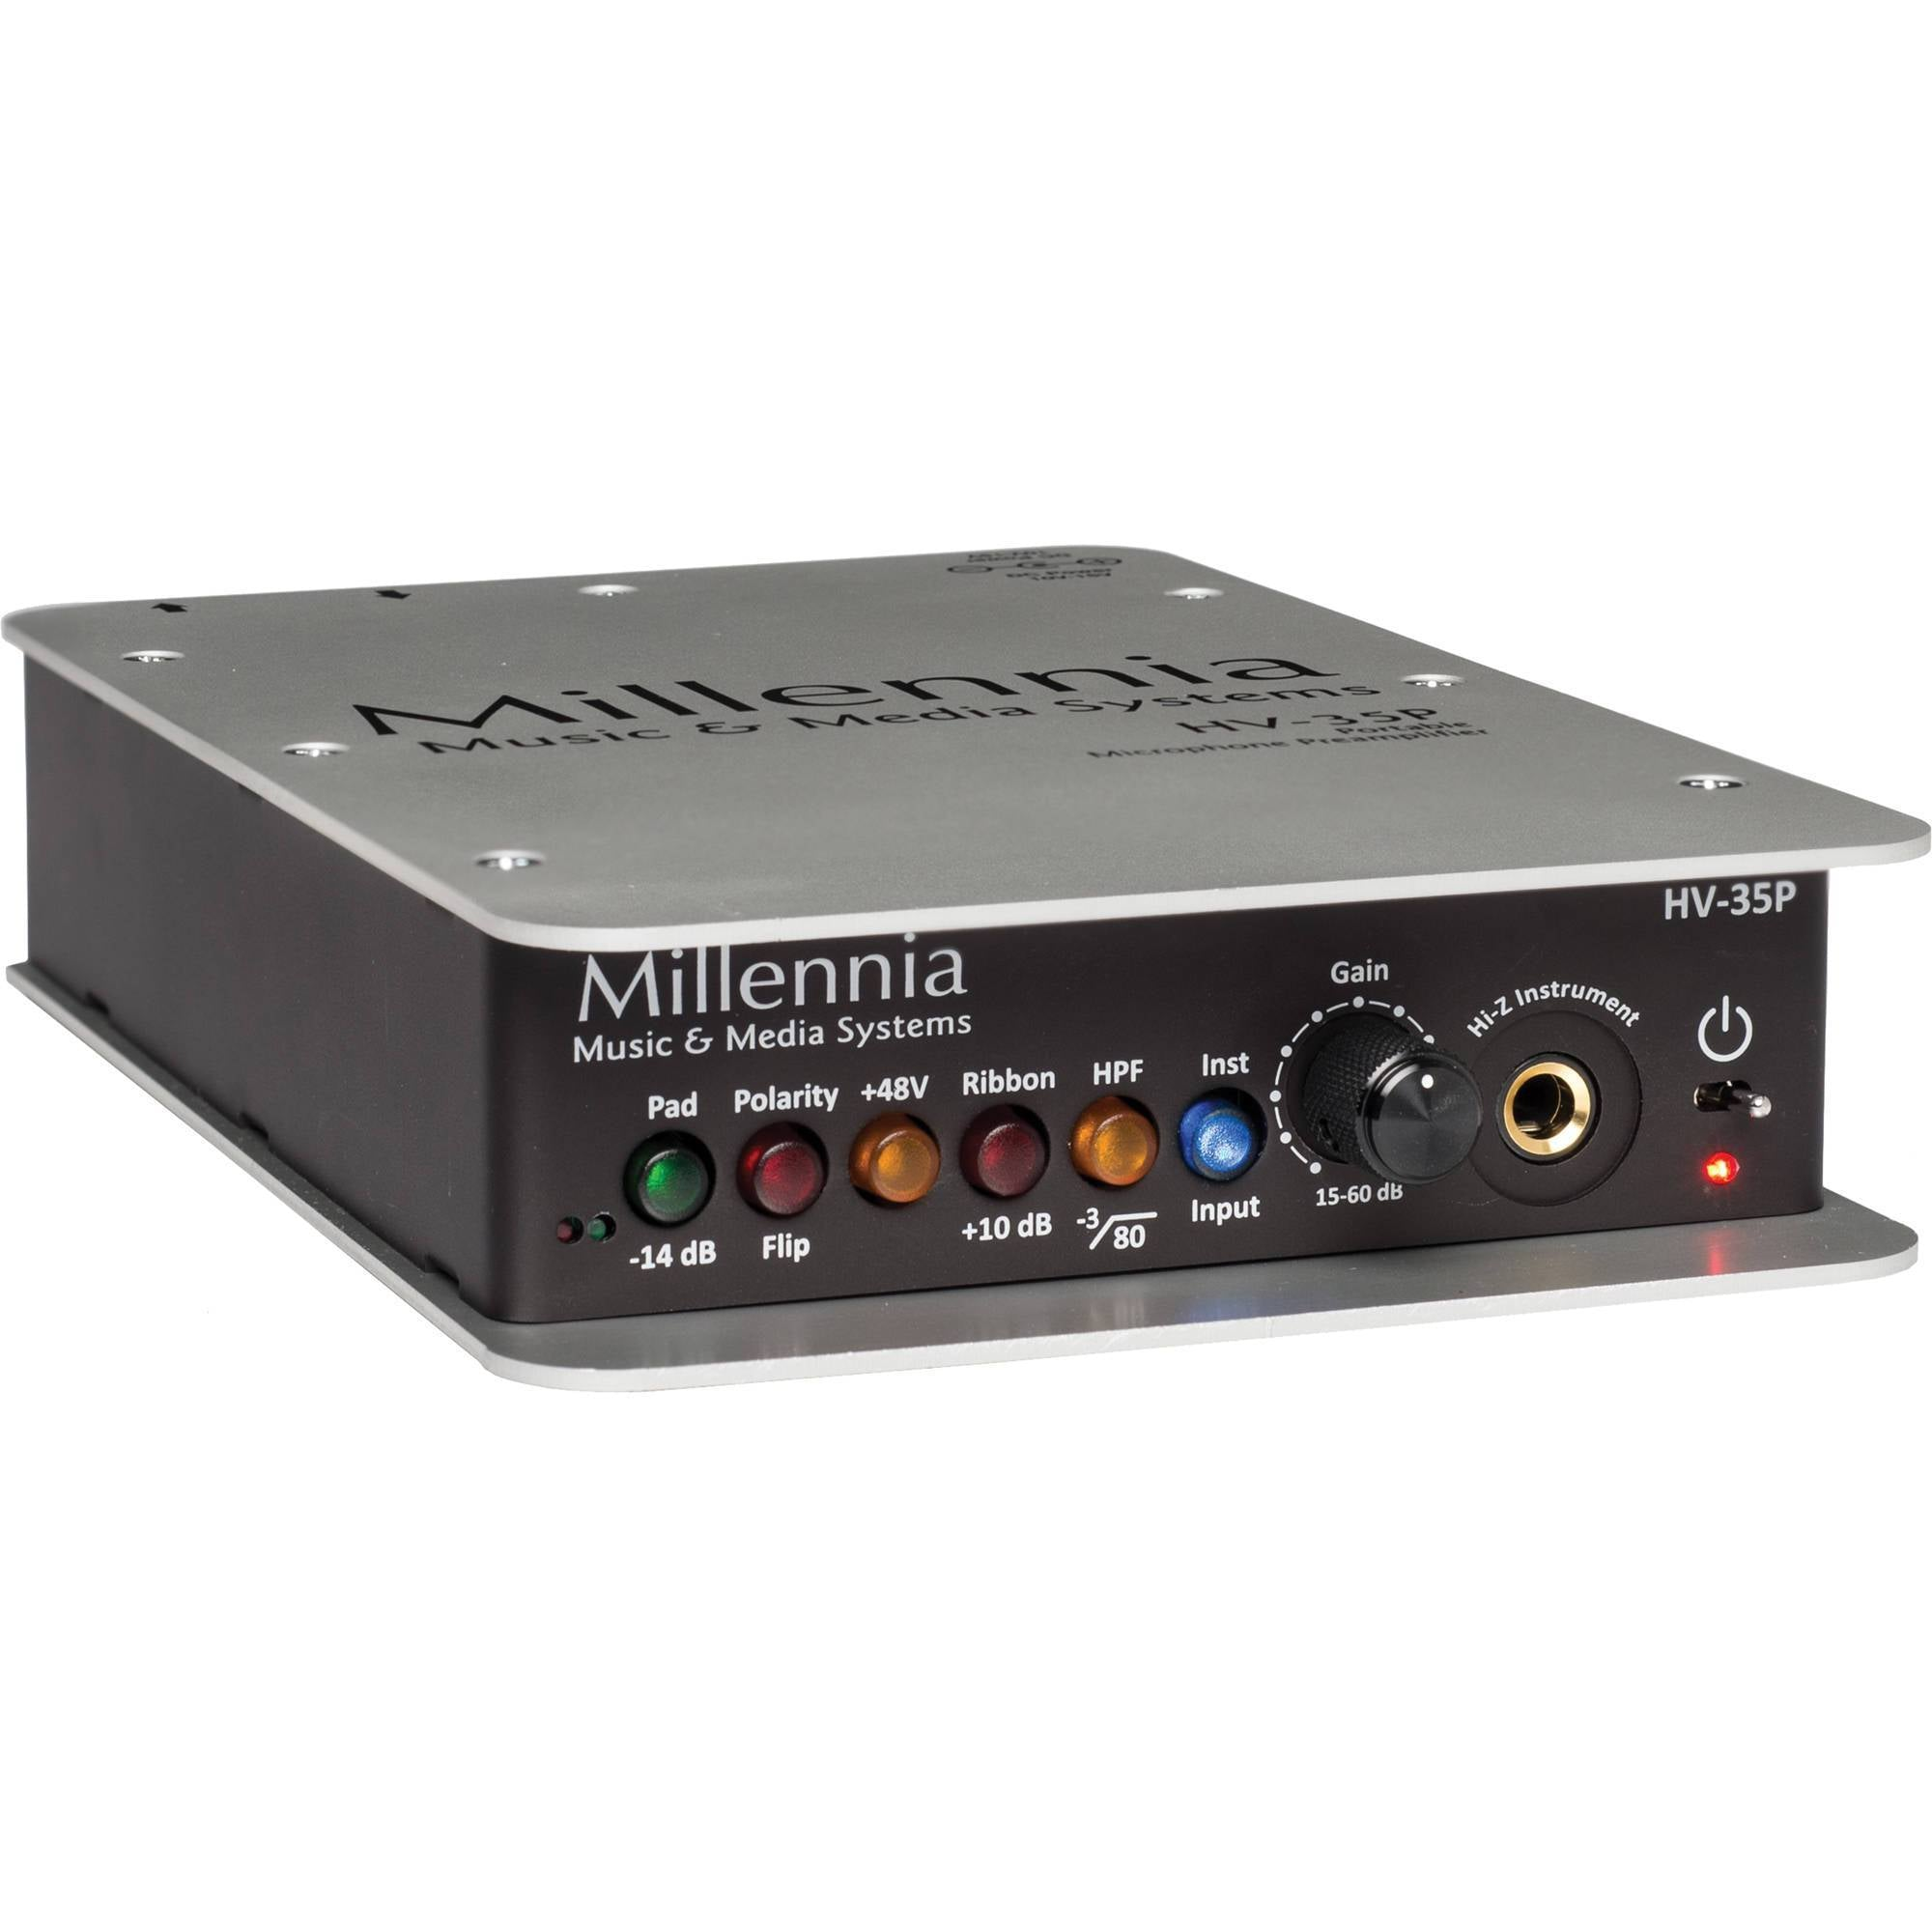 Millennia HV-35P 1 Channel Microphone Preamplifier & DI Box